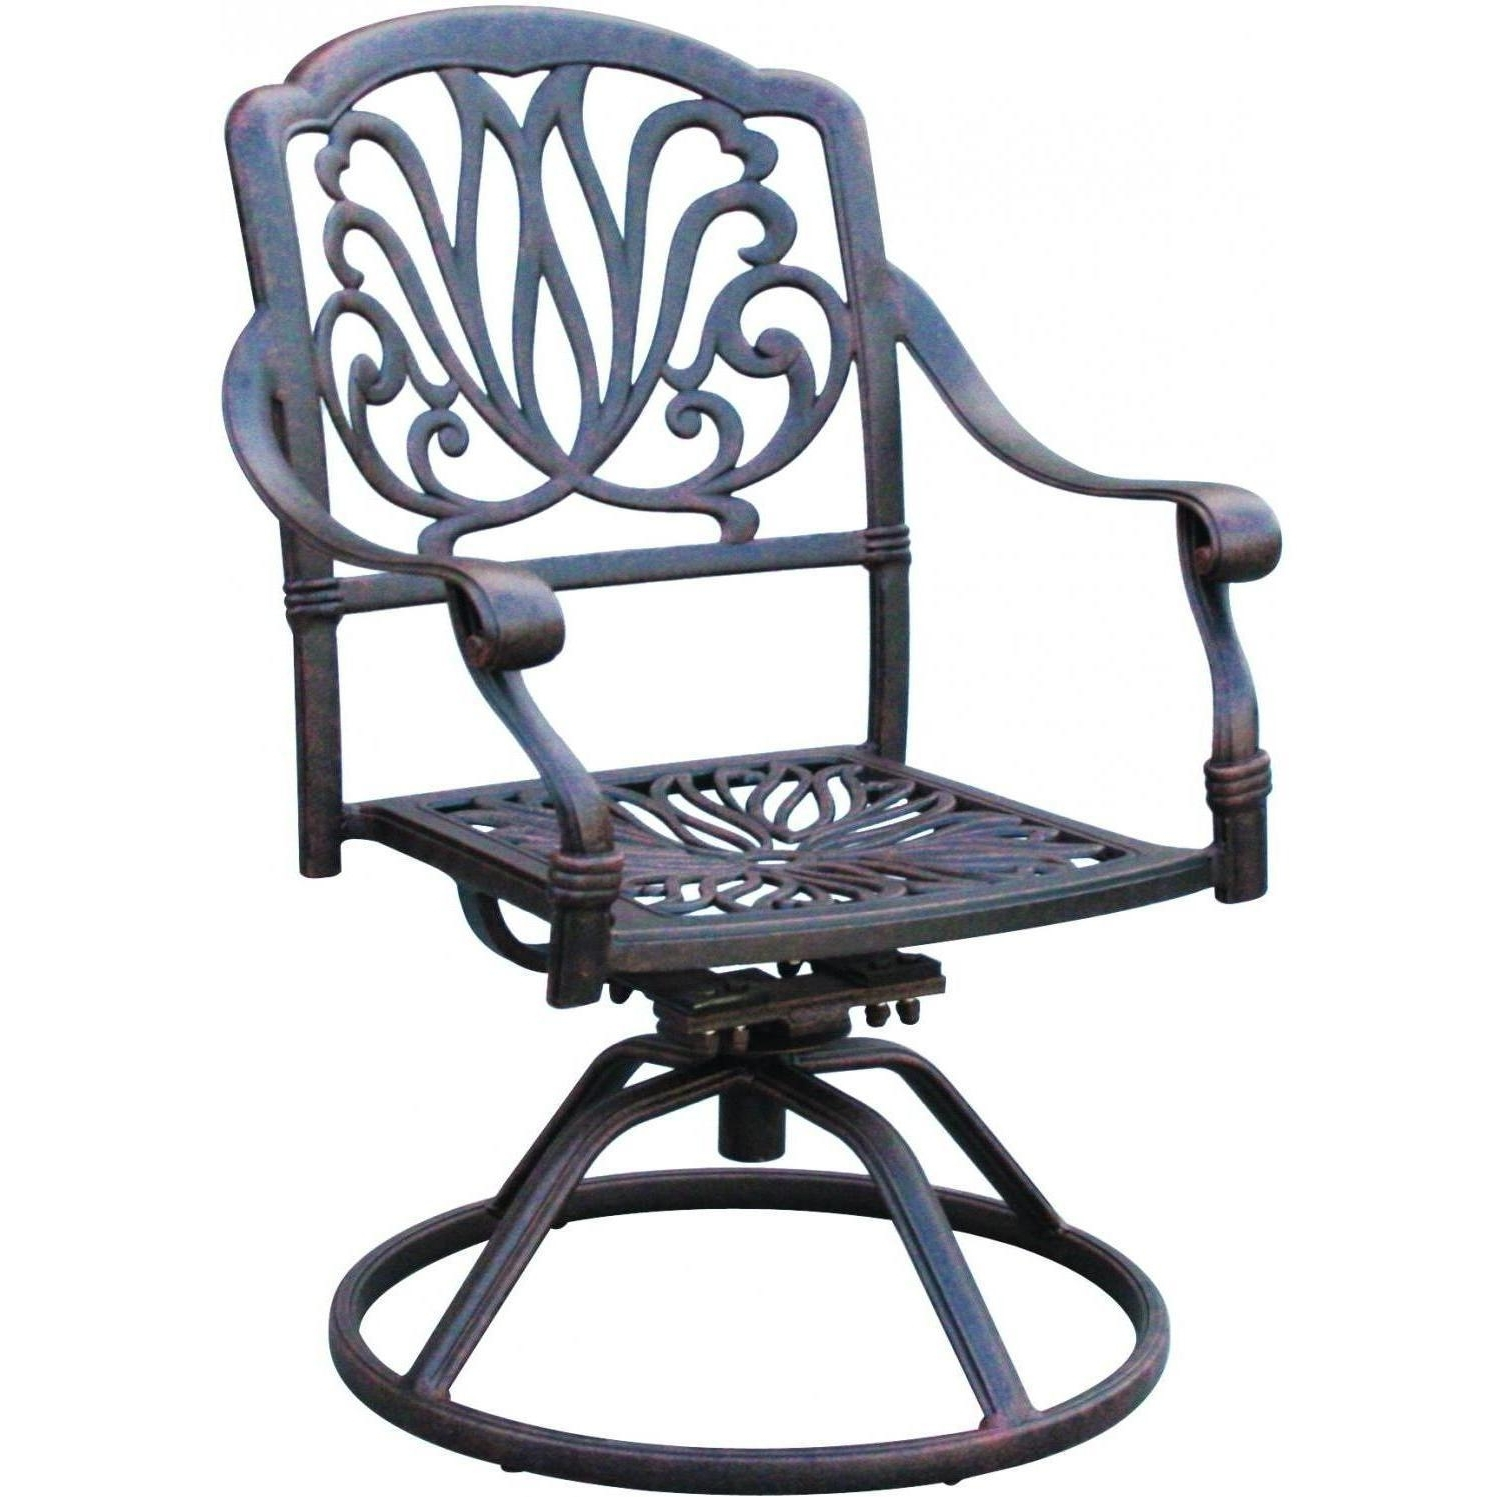 Most Recent Aluminum Patio Rocking Chairs Pertaining To Darlee Elisabeth Cast Aluminum Patio Swivel Rocker Dining Chair (View 10 of 20)